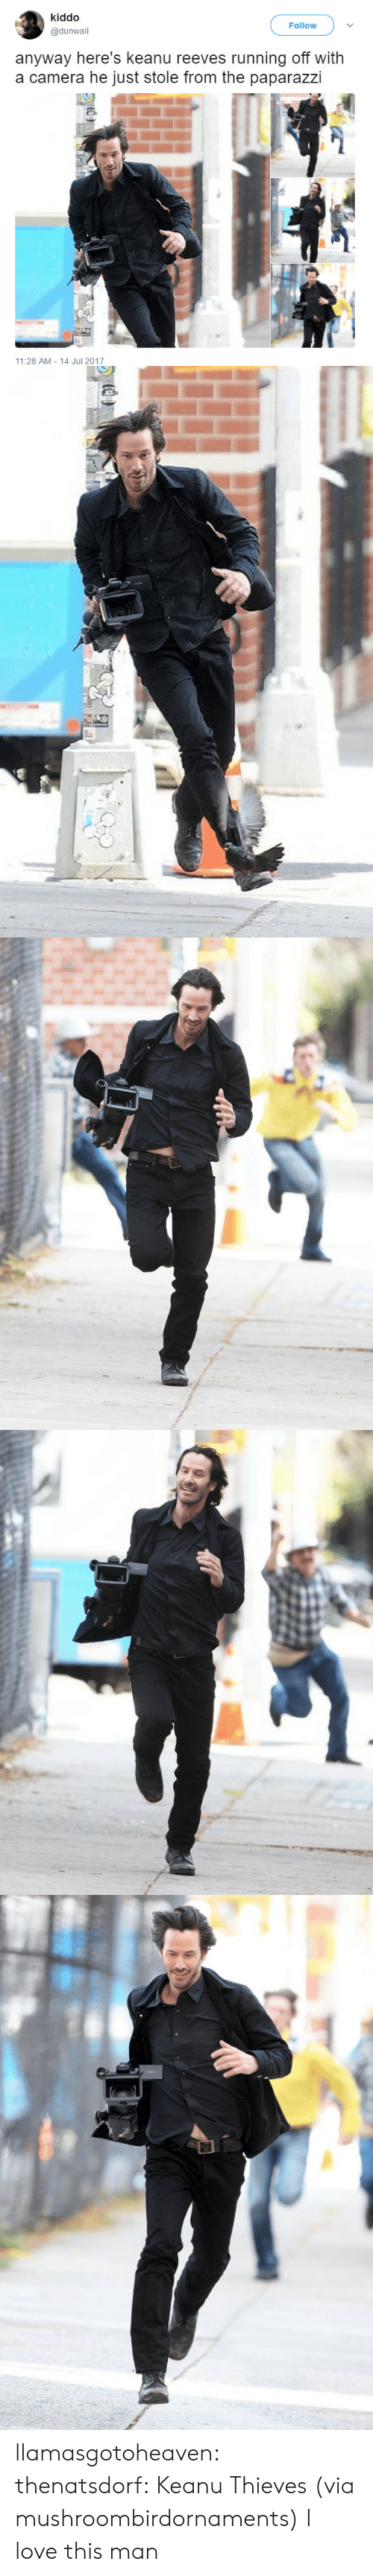 paparazzi: kiddo  @dunwall  Follow  anyway here's keanu reeves running off with  a camera he just stole from the paparazzi  11:28 AM 14 Jul 2017 llamasgotoheaven:  thenatsdorf: Keanu Thieves (via mushroombirdornaments)  I love this man